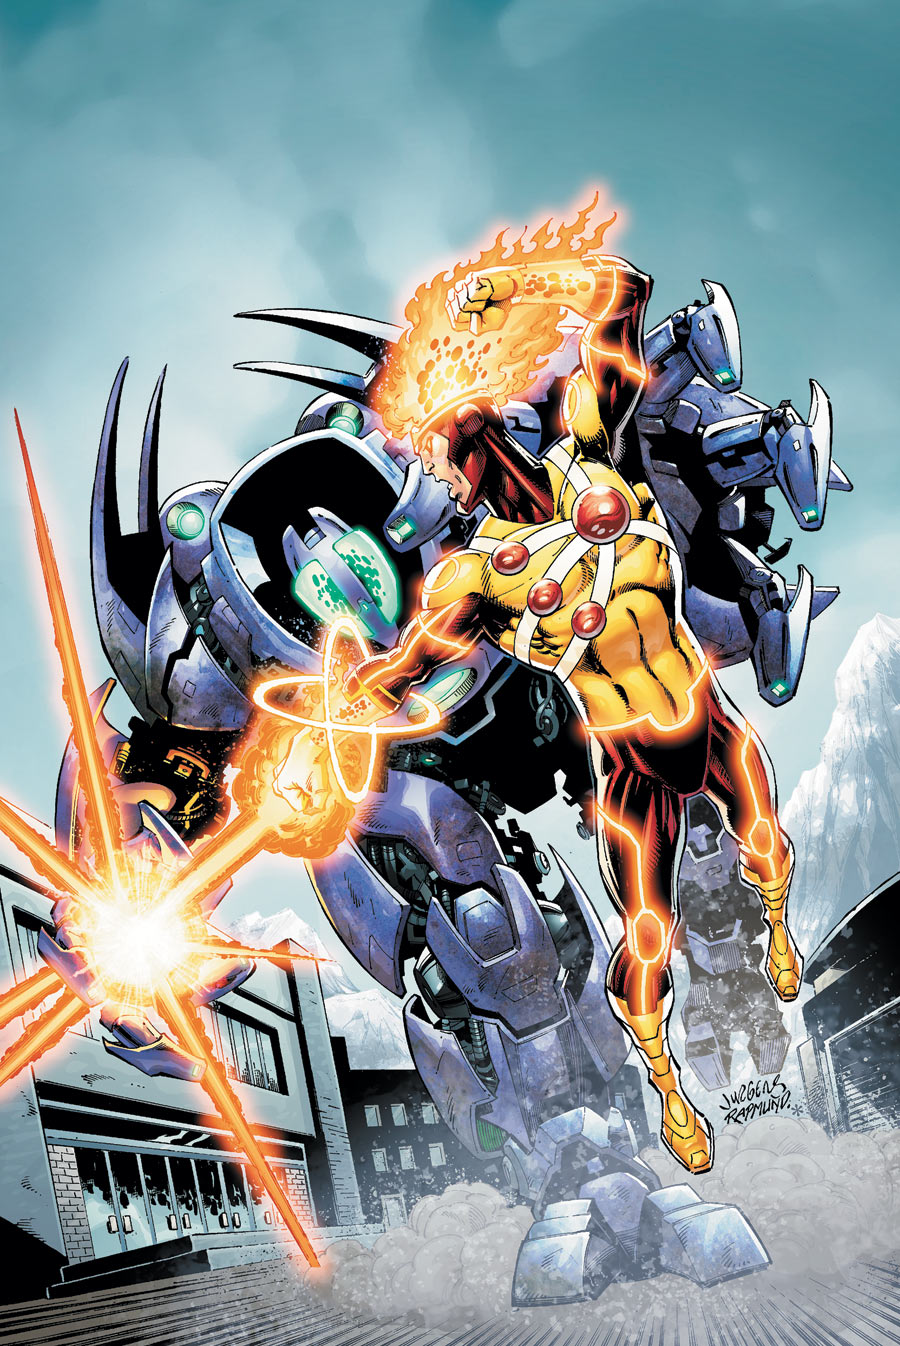 Fury of Firestorm #13 cover by Dan Jurgens and Norm Rapmund